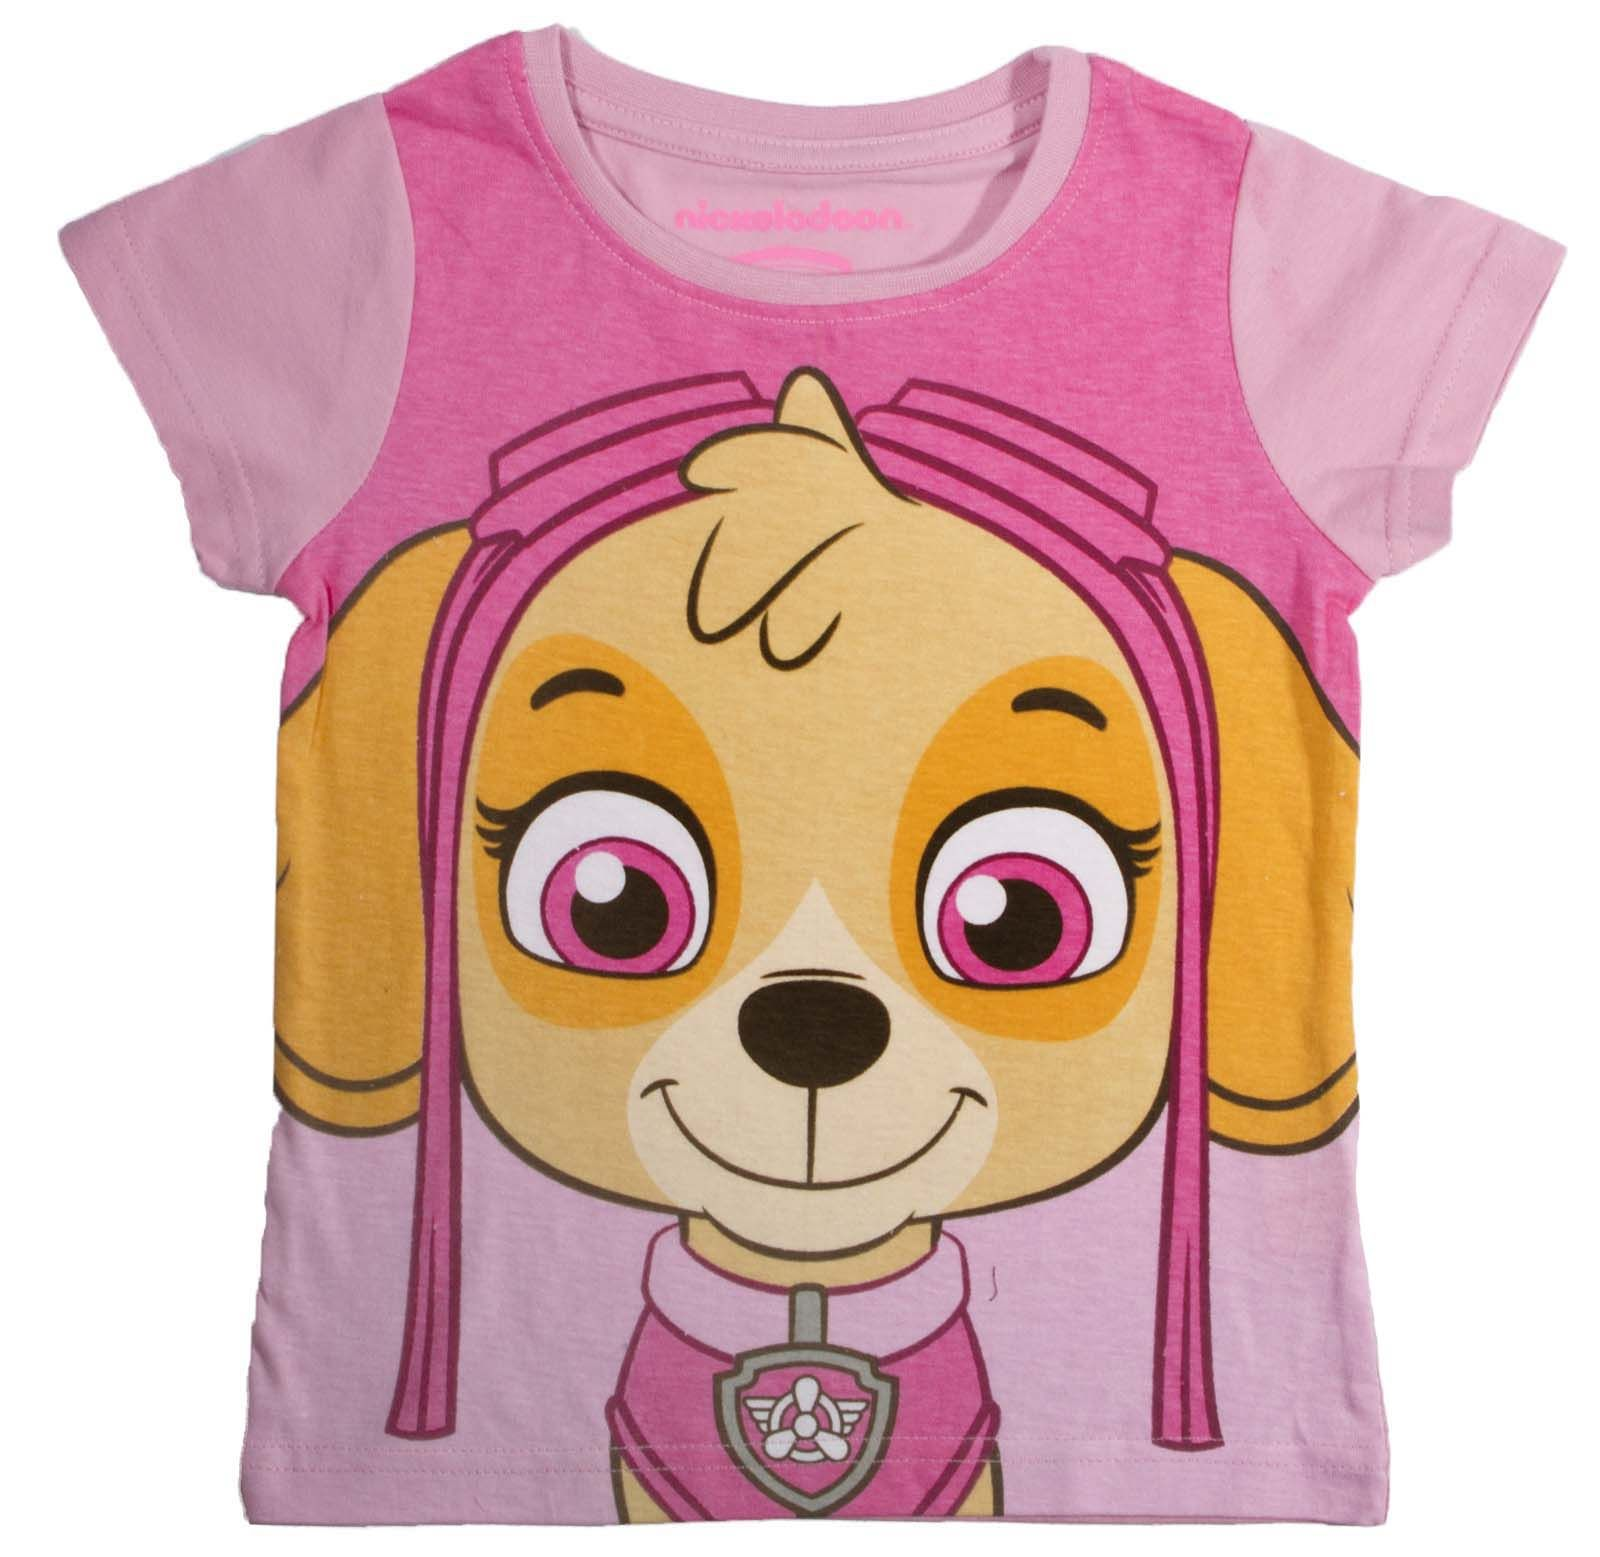 1c61c0cb9 Details about Paw Patrol T Shirt With Face Mask Short Sleeve Top ...